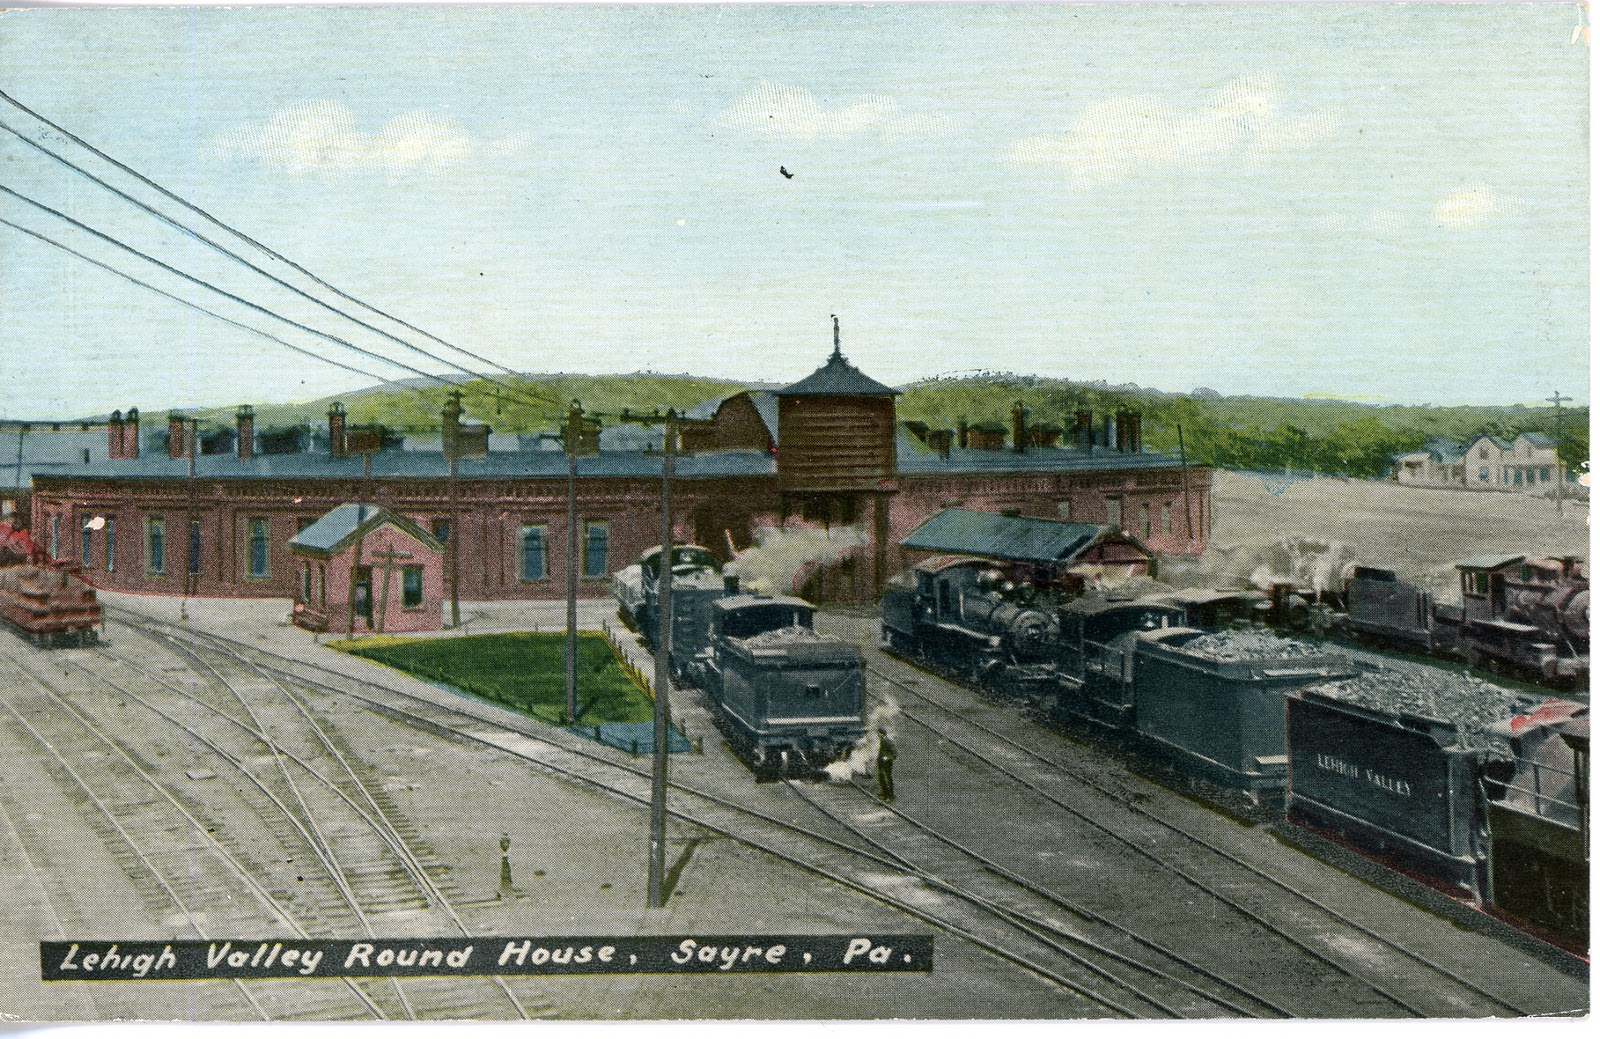 Lehigh Valley Railroad http://railroadpostcards.blogspot.com/2011_01_27_archive.html